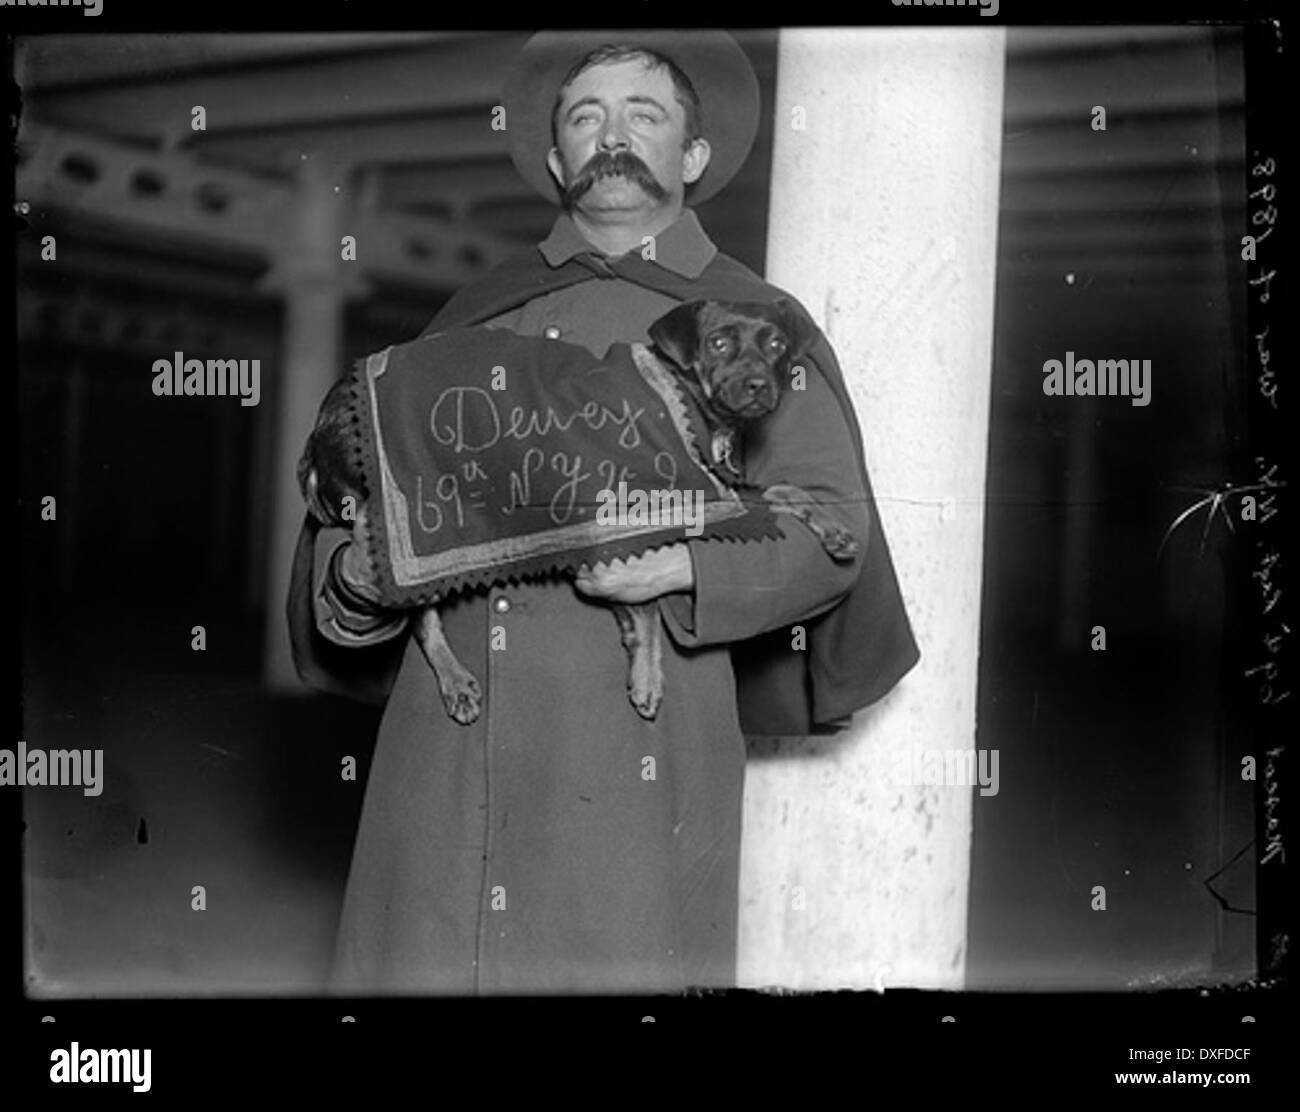 Spanish American War, 69th Regiment Mascot - Stock Image